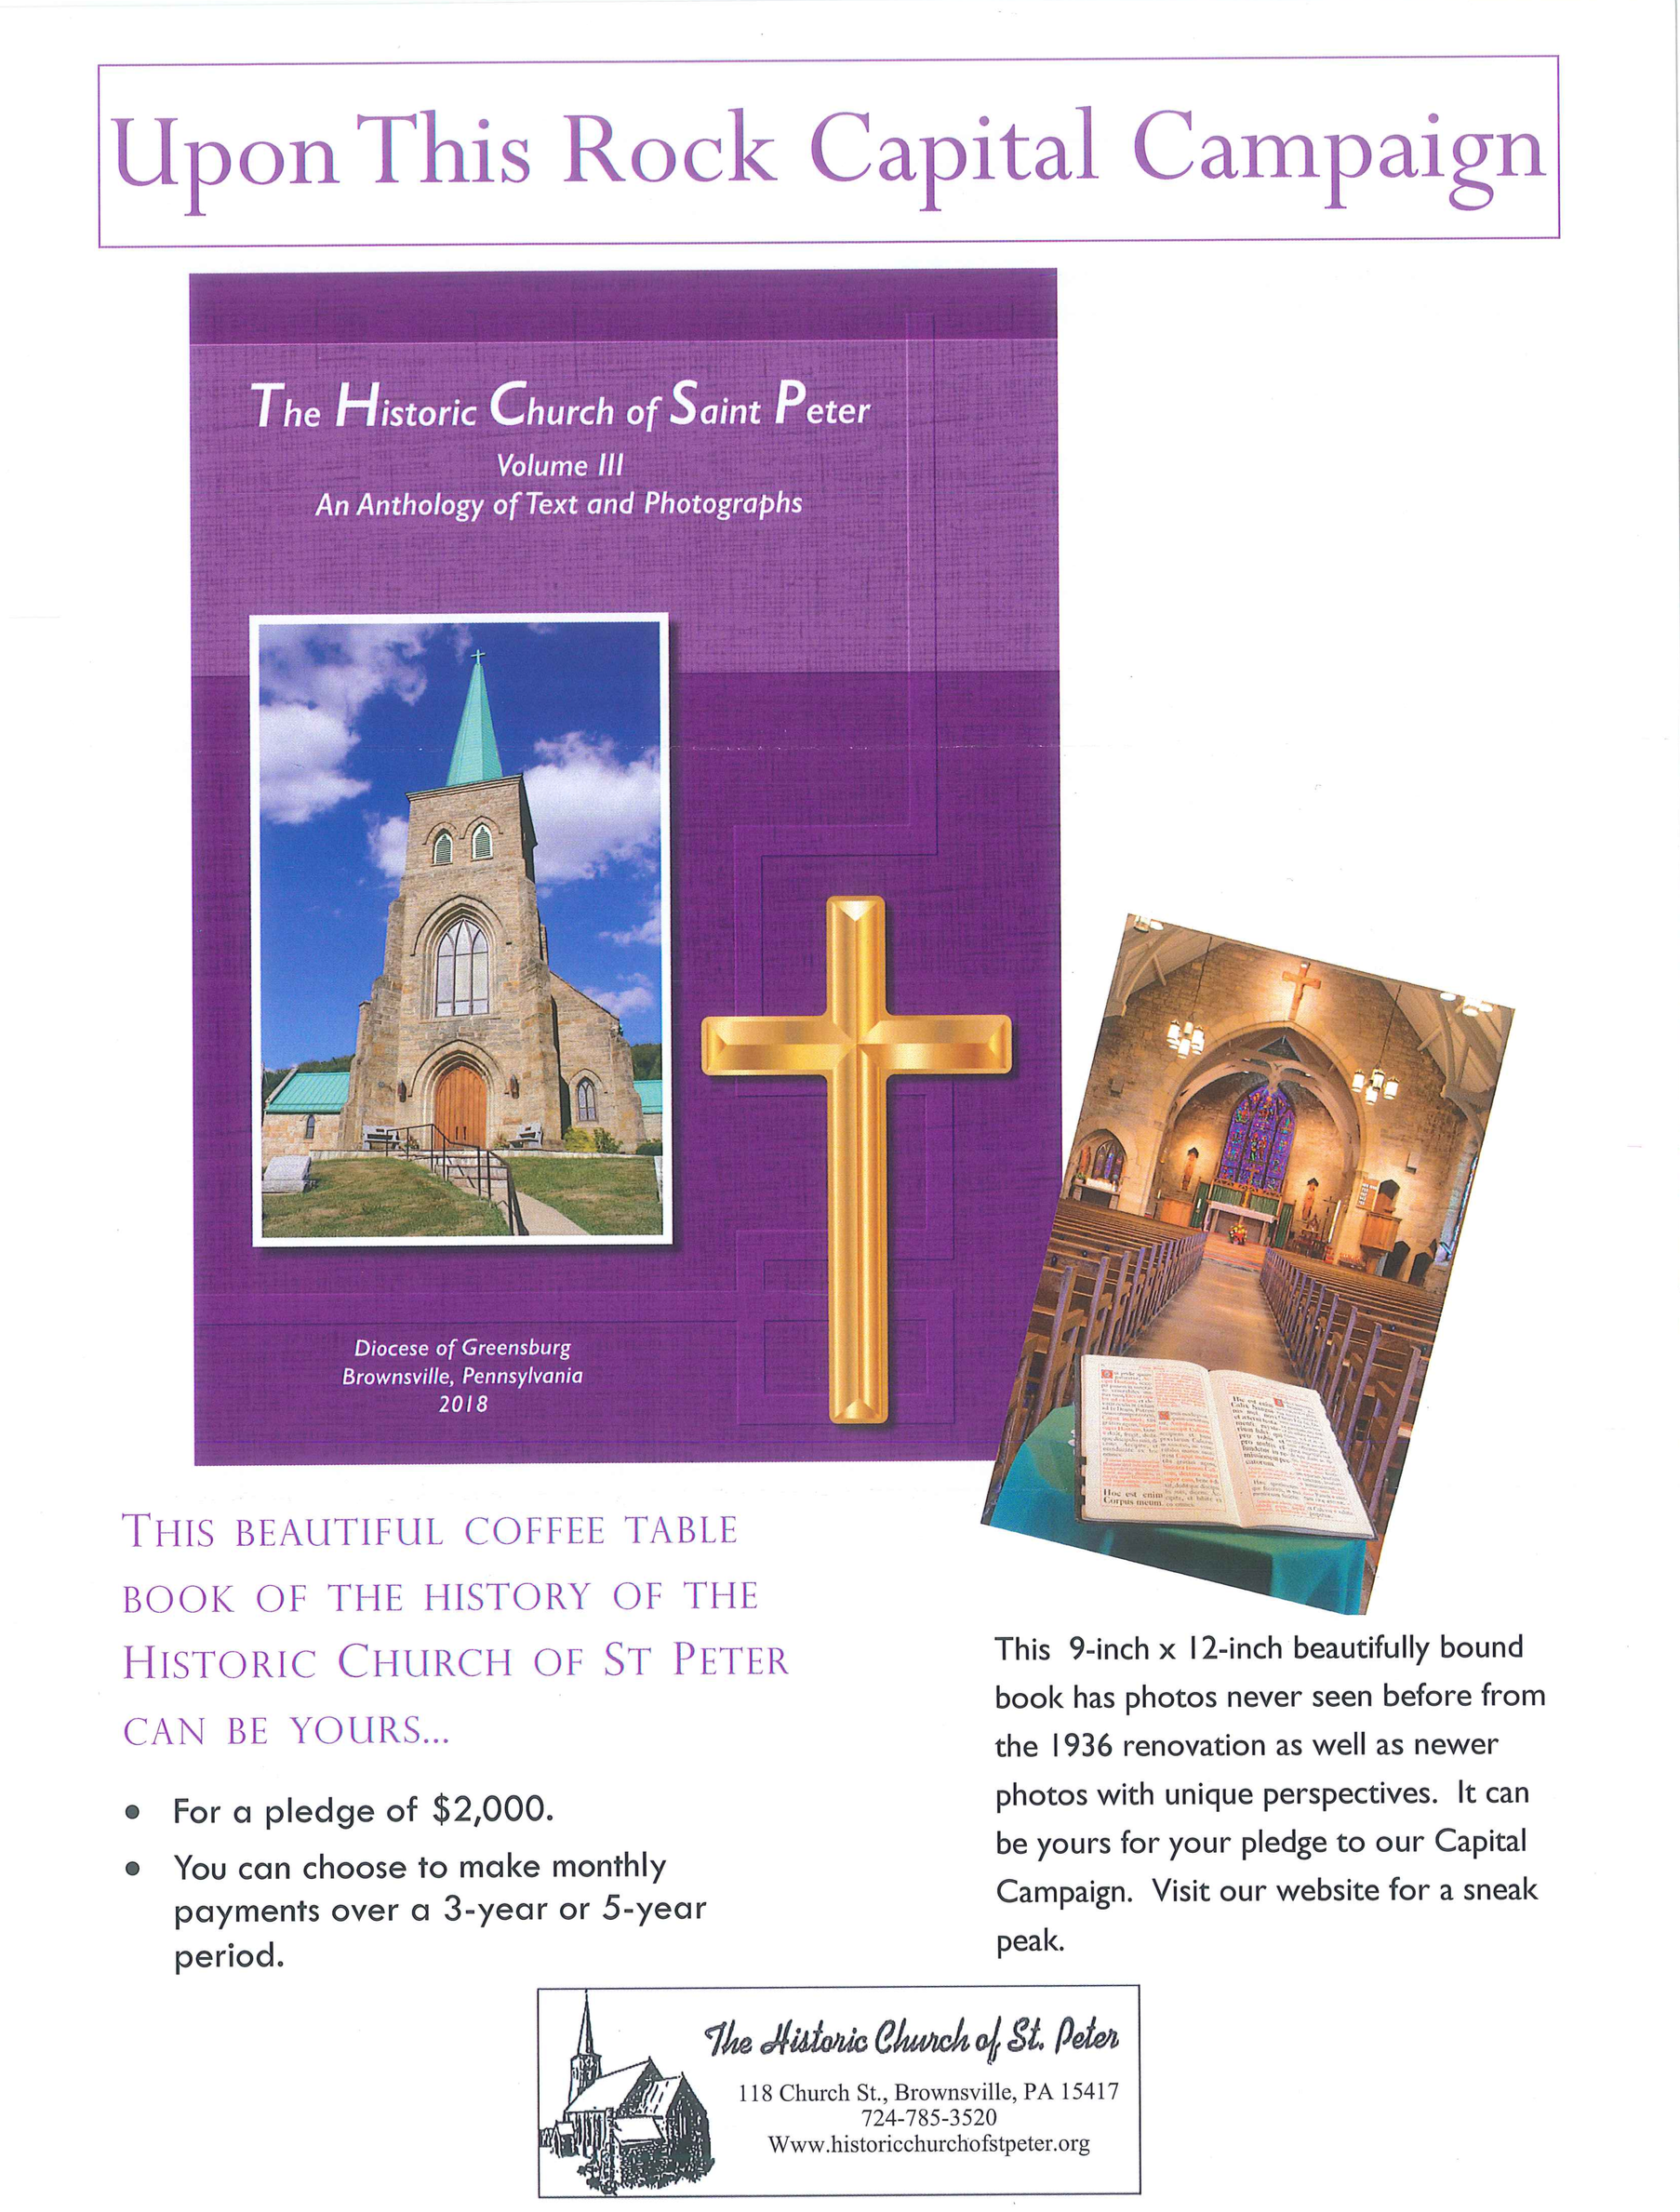 to view a sample of the first few pages of the book, click the image above to download a pdf.